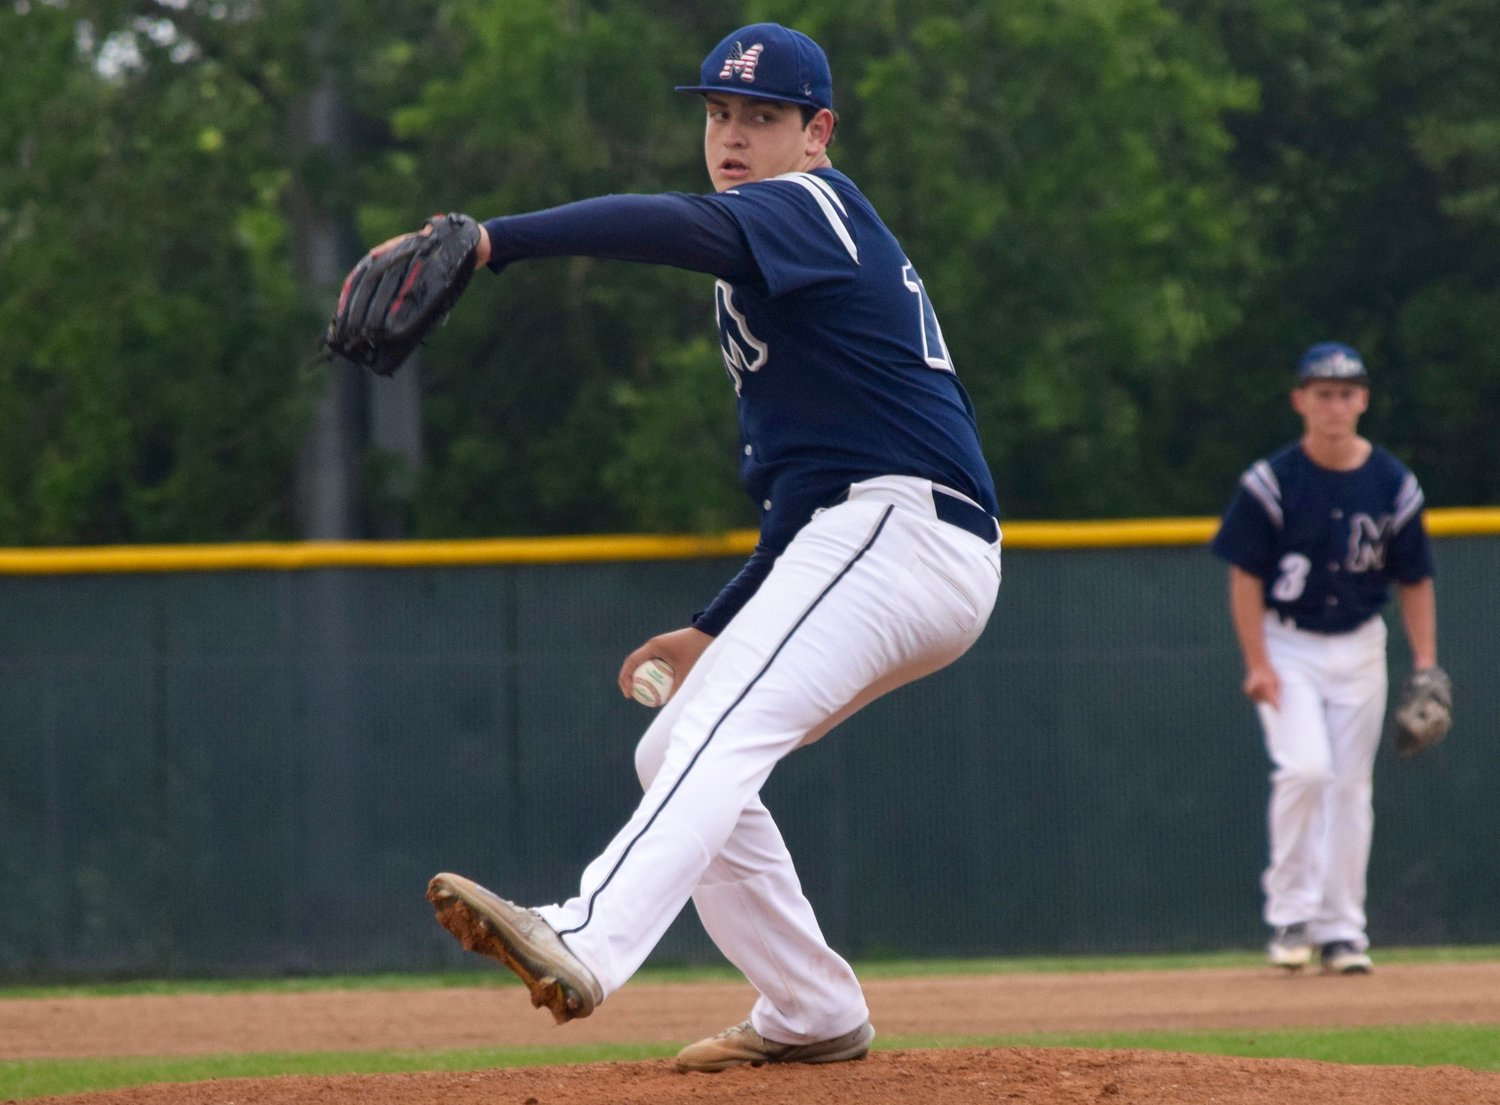 McNeil starter Cooper Anderson allowed two runs on three hits with three strikeouts and the Mavs beat Hendrickson 3-2 on Tuesday to clinch the No. 3 seed in District 13-6A.